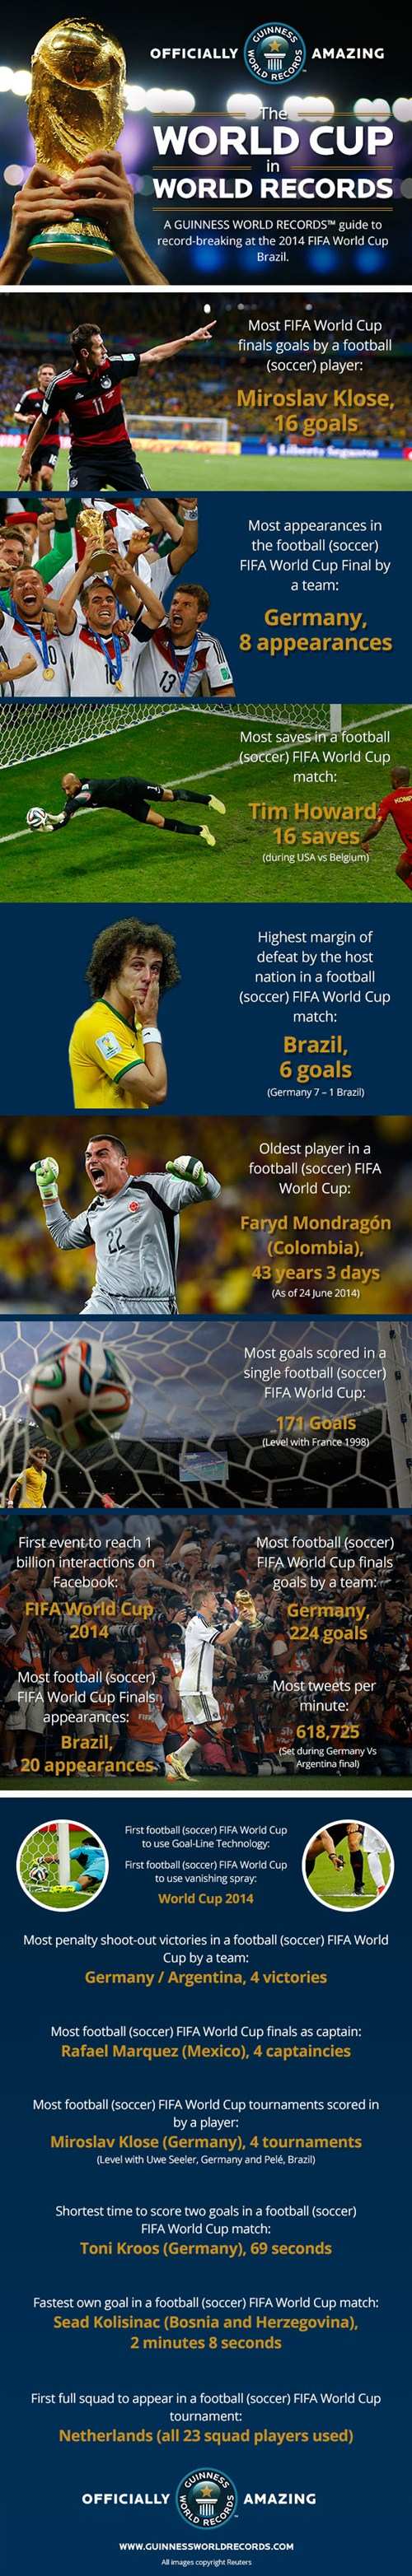 World-Cup-2014-GWR-Records-Infographic.jpg